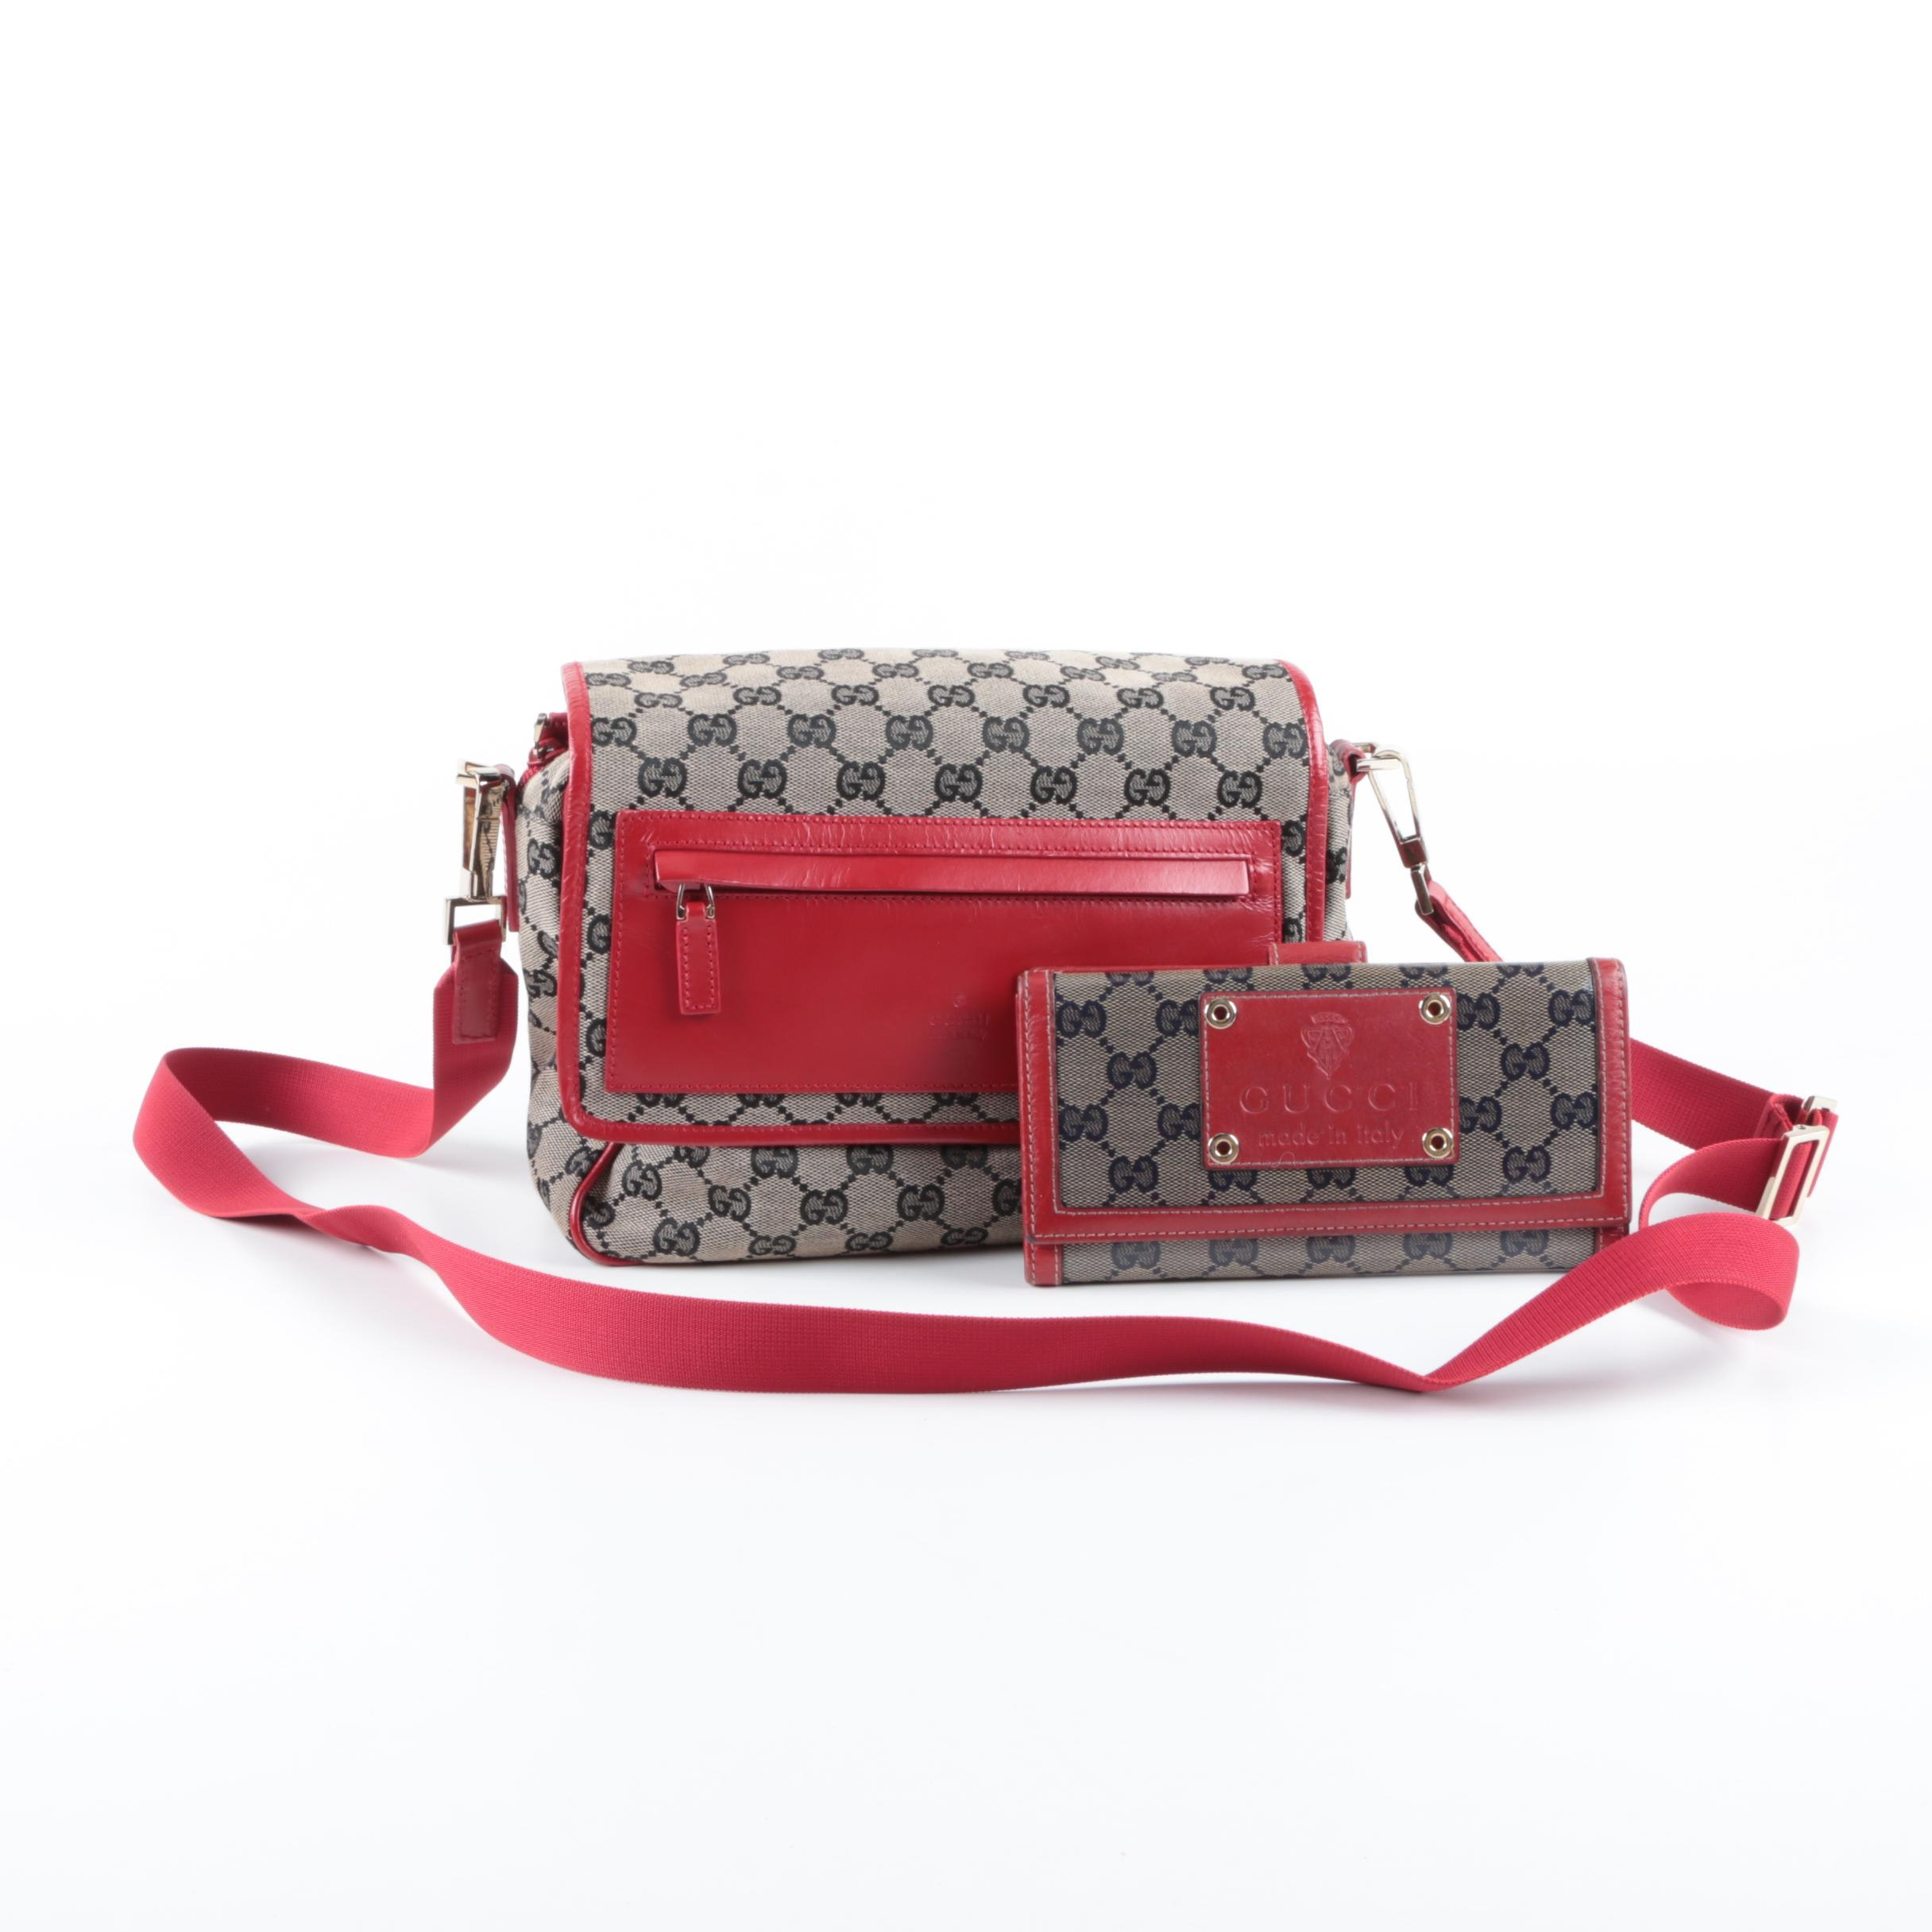 Gucci GG Canvas and Red Leather Messenger Bag and Supreme GG Wallet